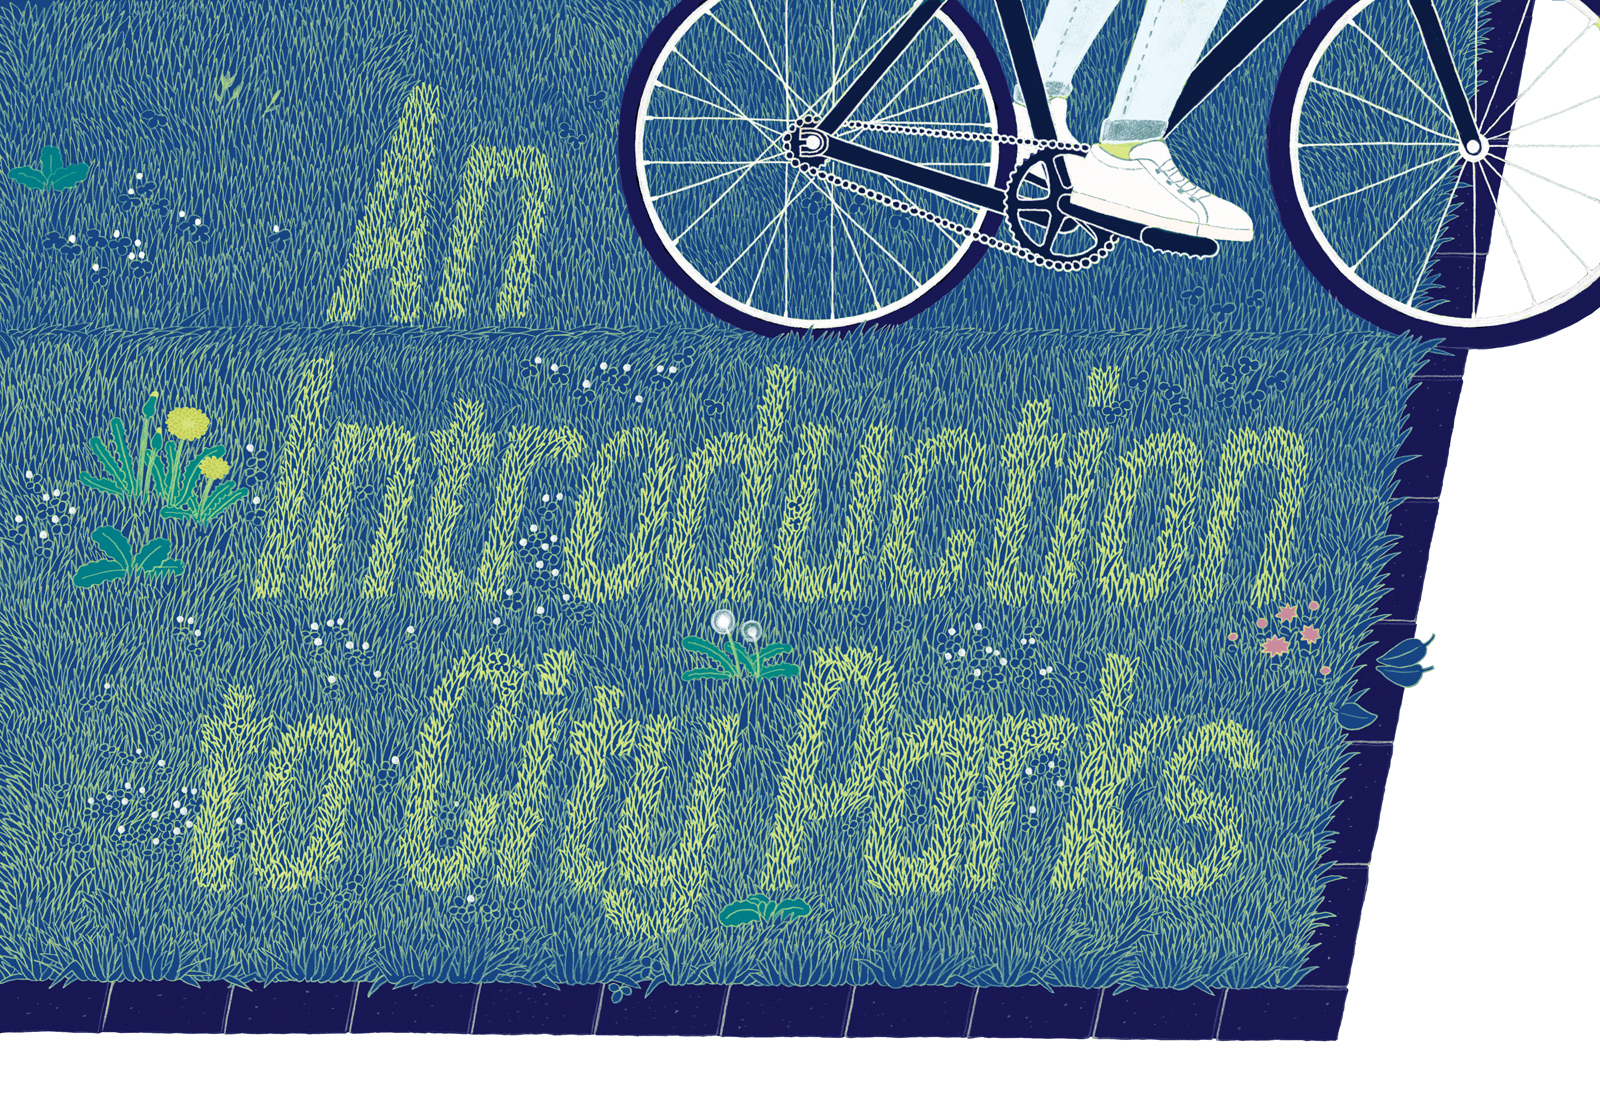 an inroduction to city parks illustration